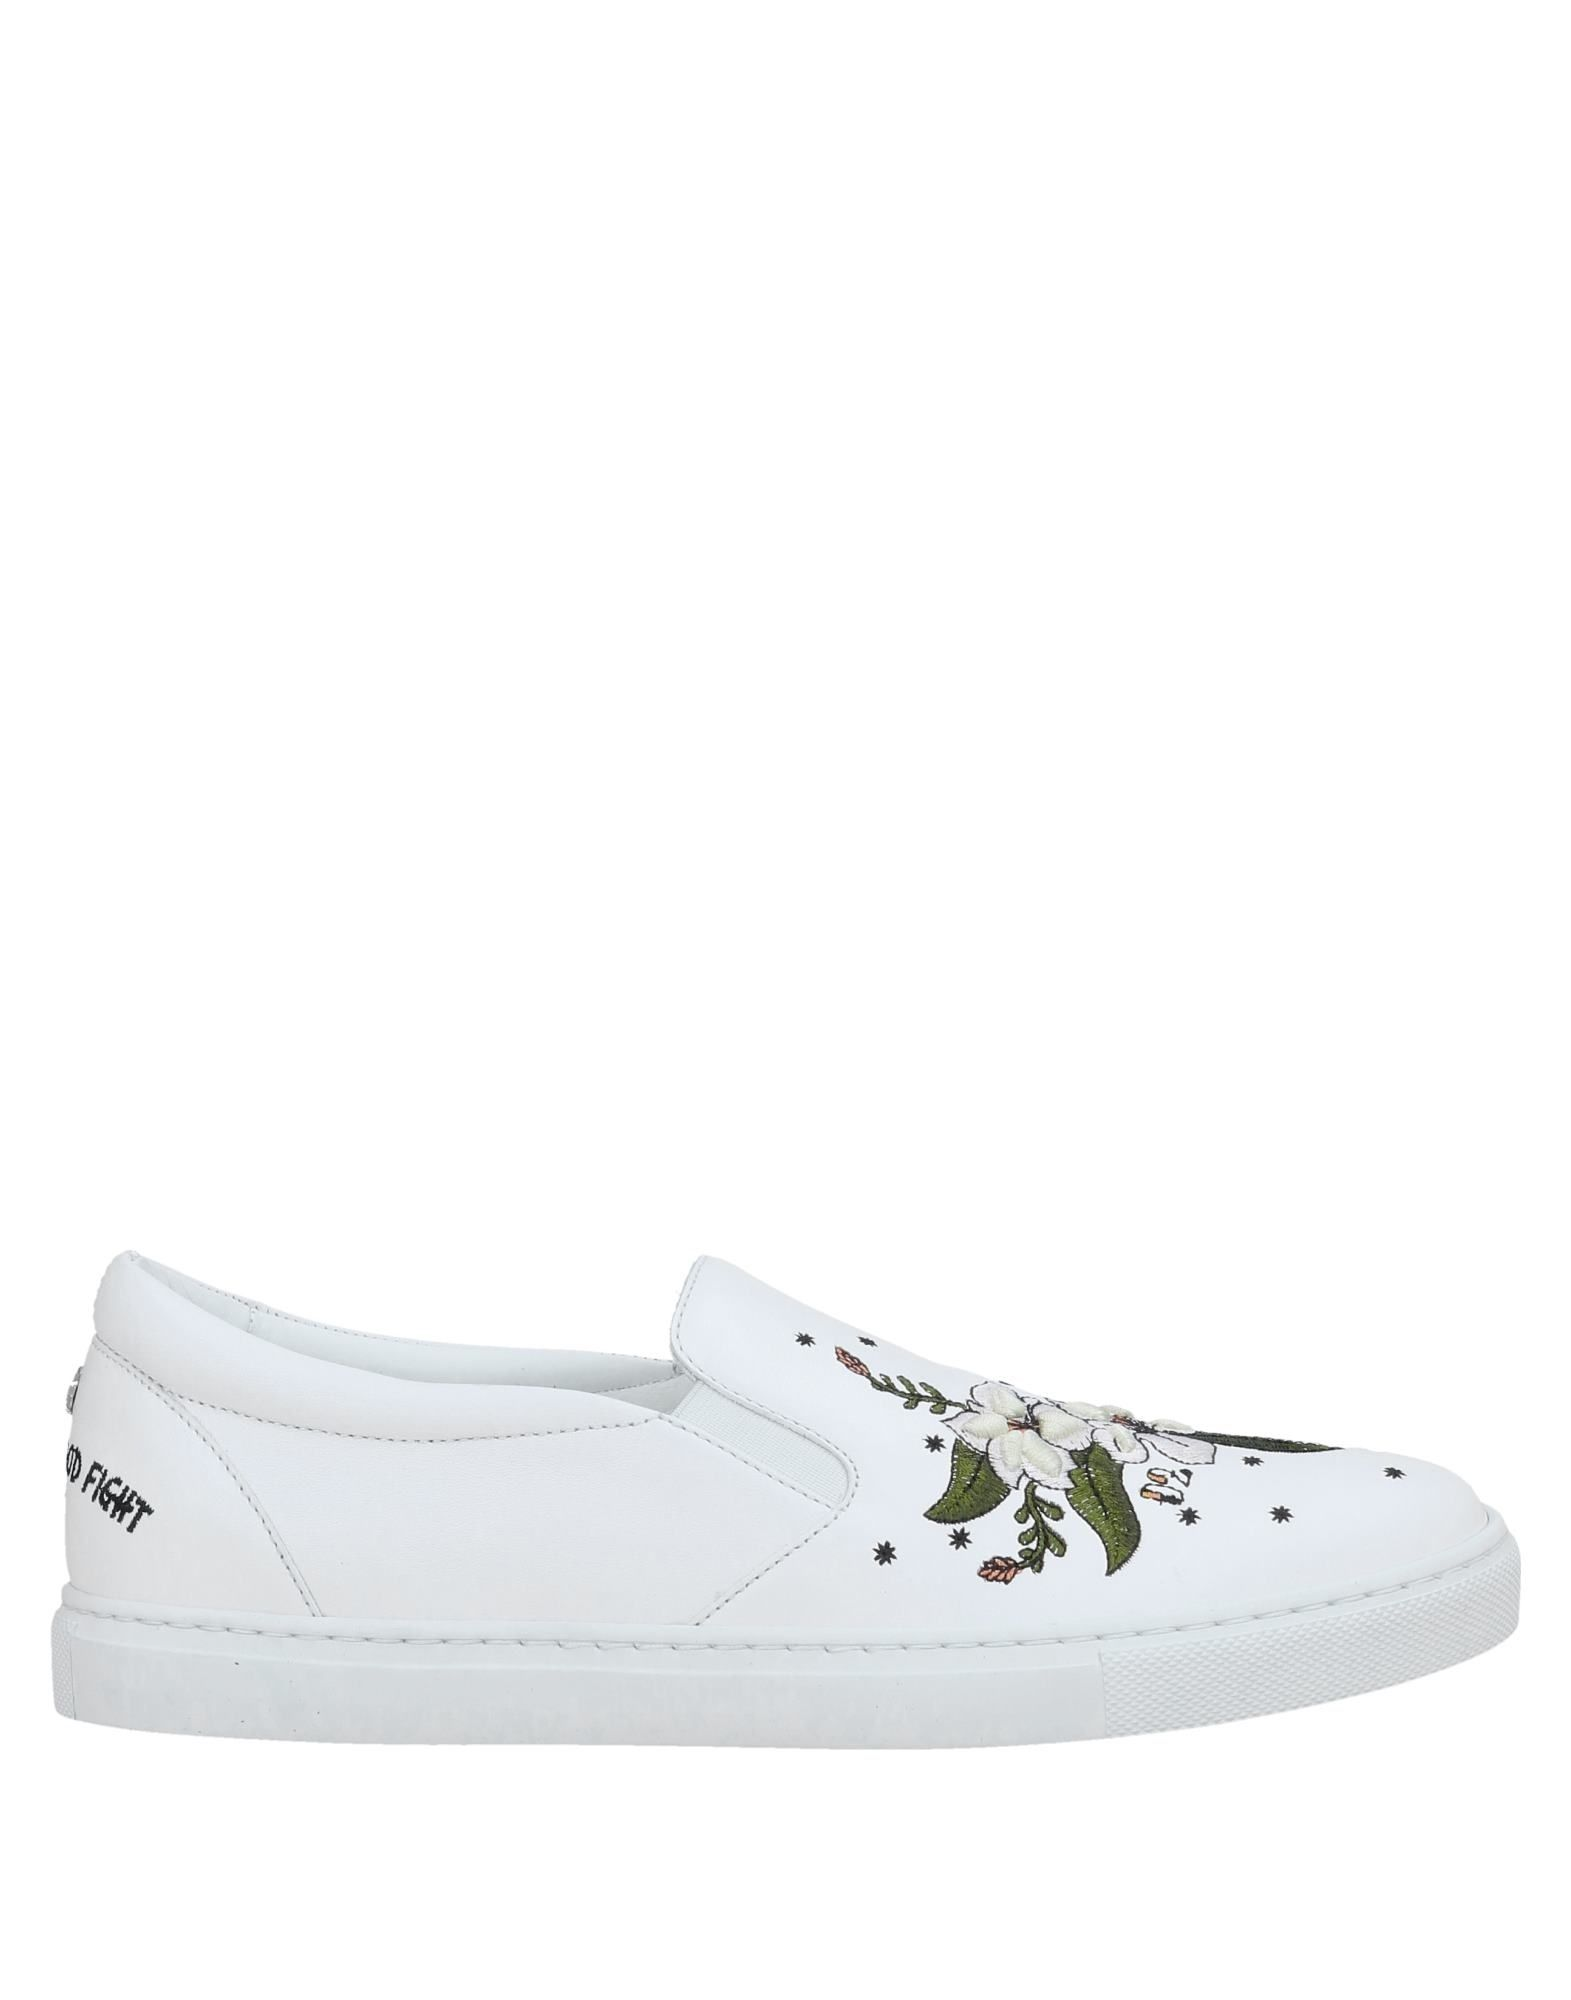 Baskets Dsquared2 Femme - Baskets Dsquared2 Blanc Mode pas cher et belle